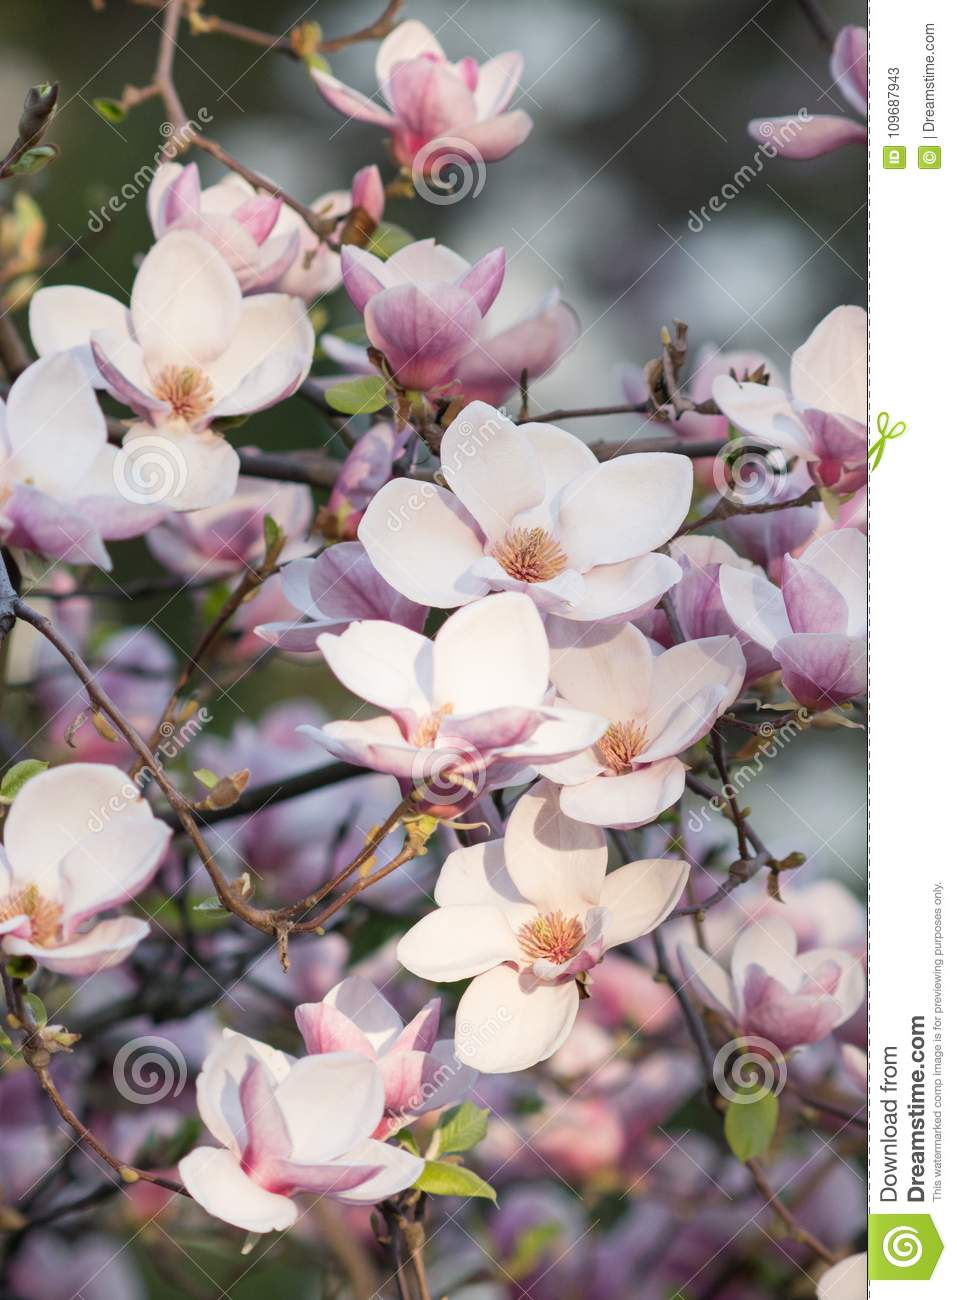 Beautiful Pictures Of Flowers Beauty Natural Beautiful Season Nature Magnolia Flower